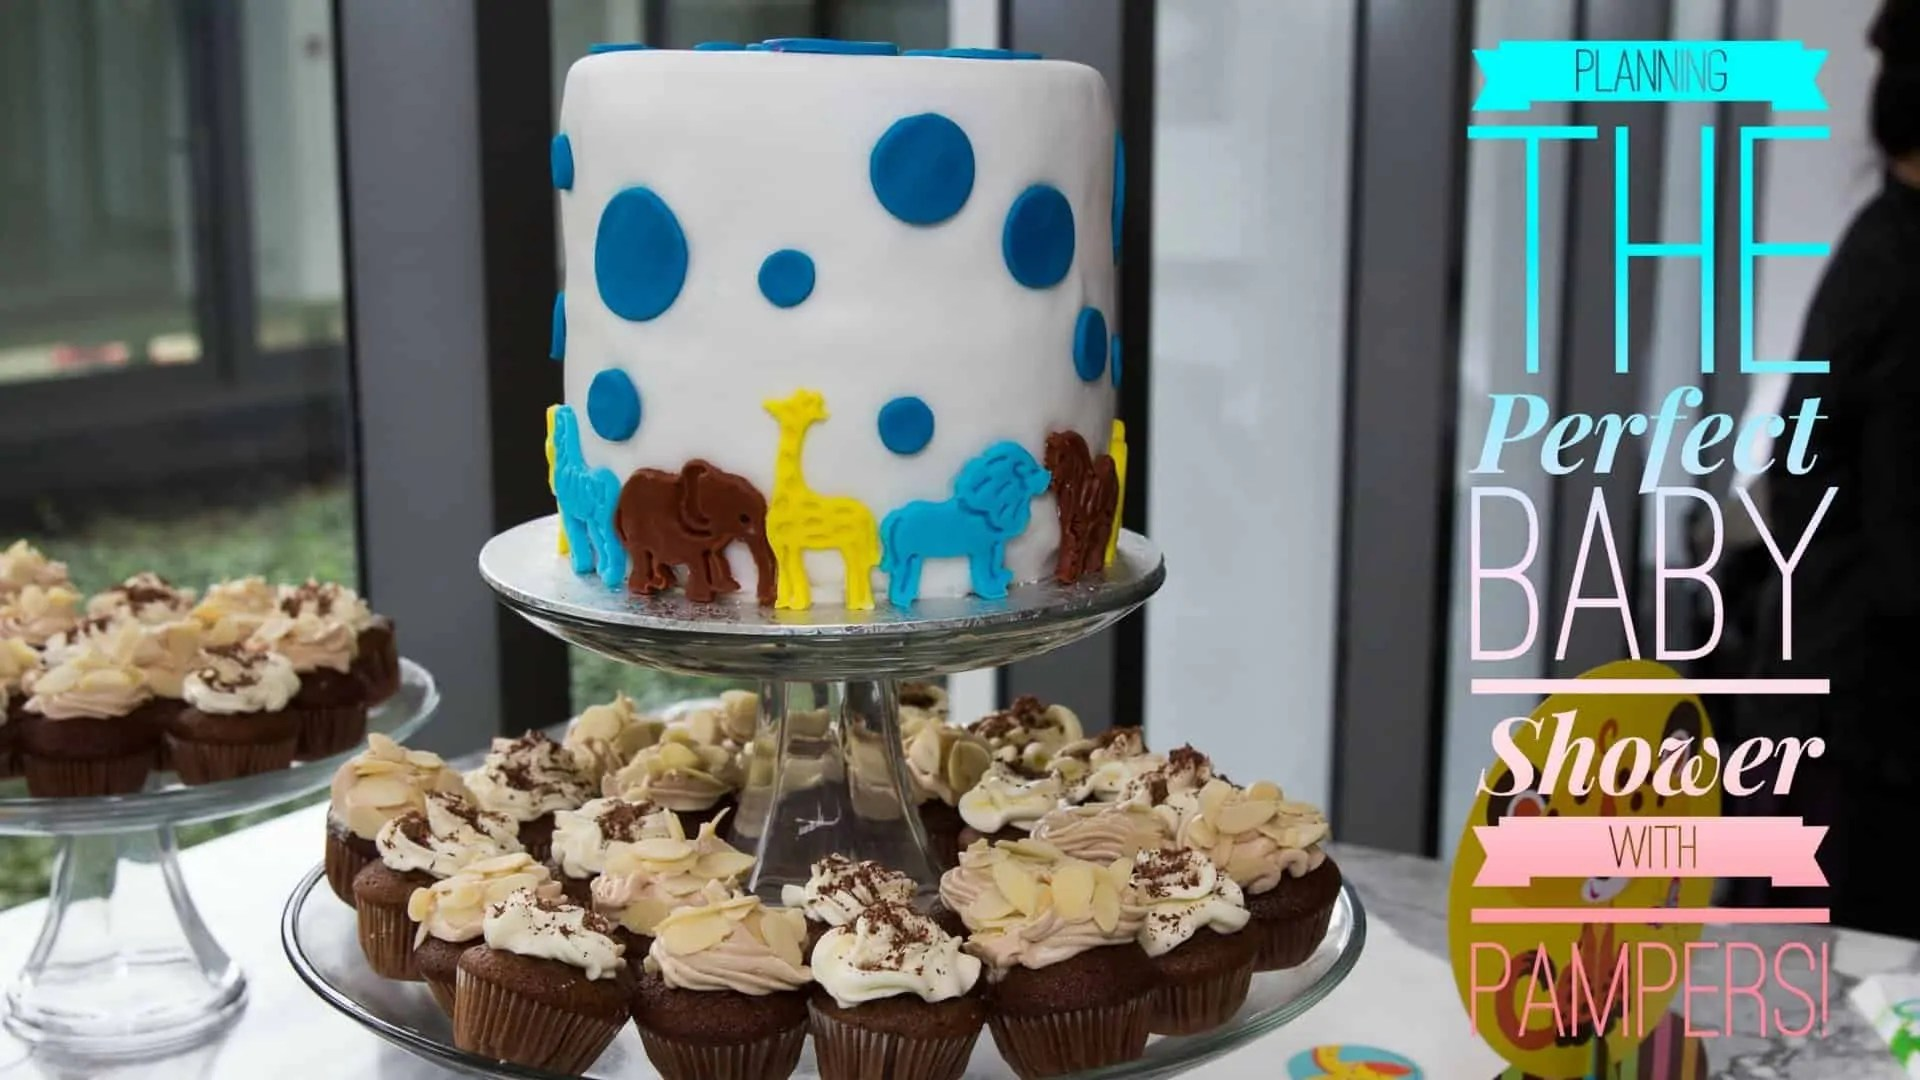 Planning the Perfect Baby Shower with Pampers! (Featured Image)